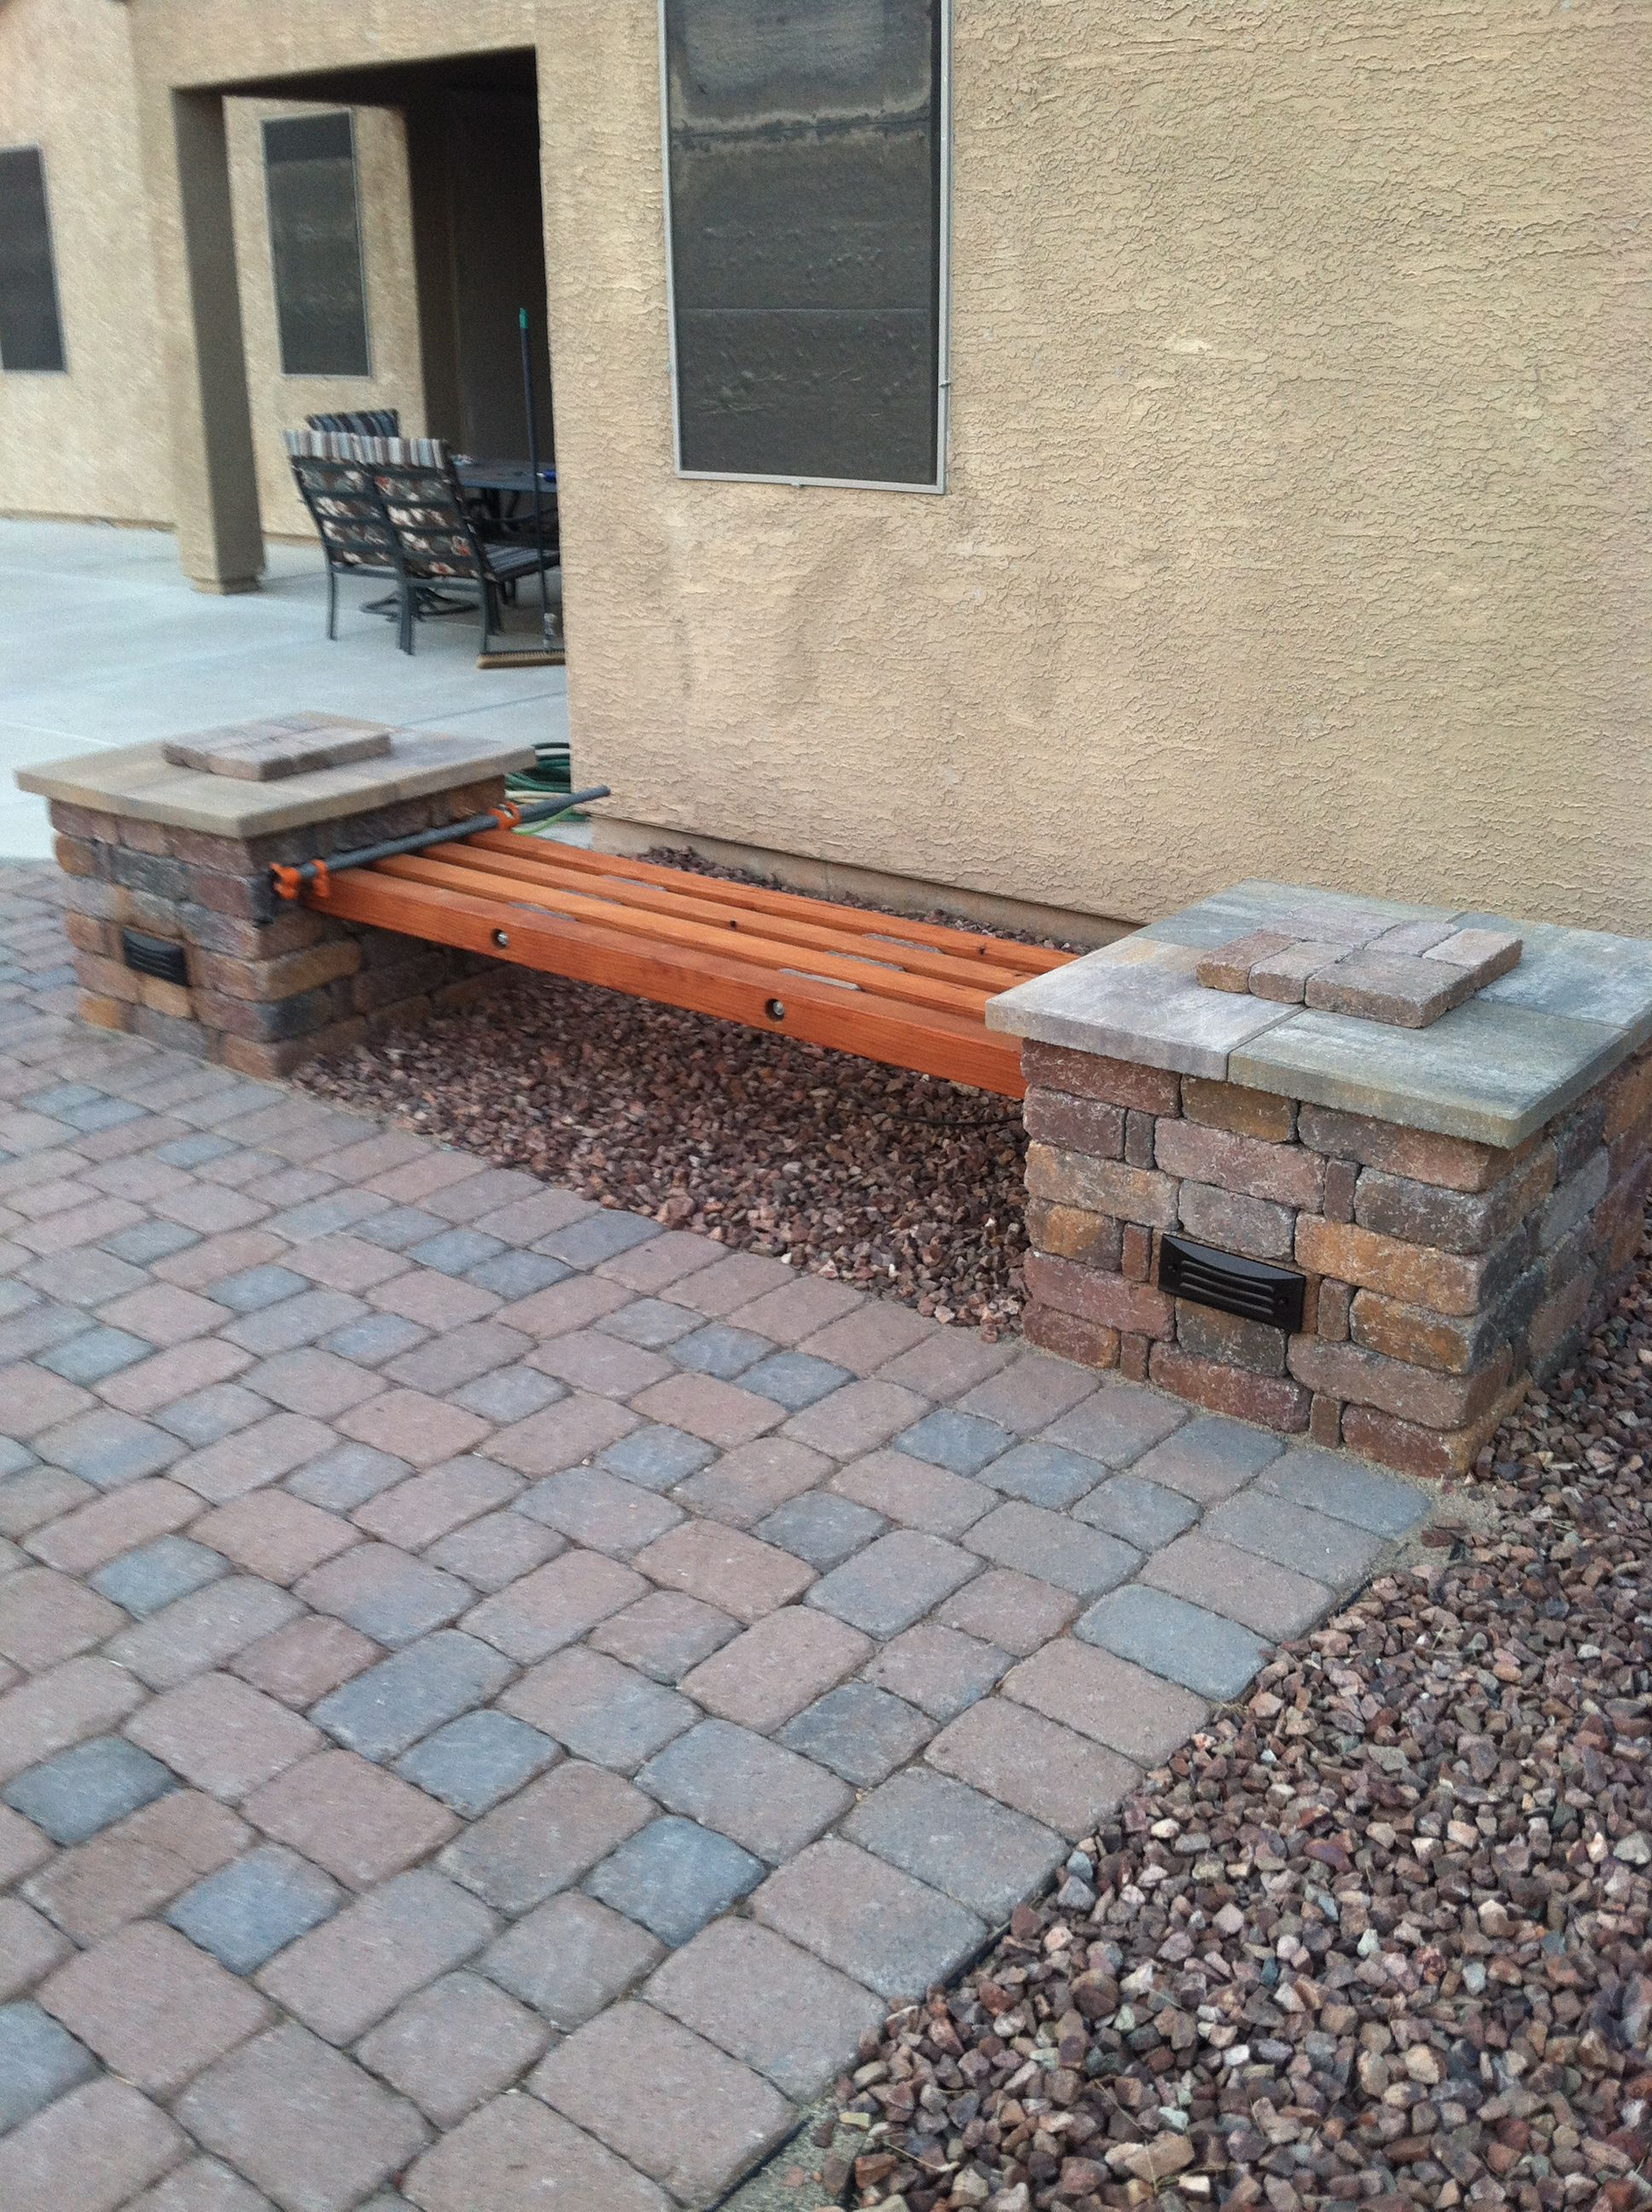 Diy rumblestone 4 beam bench with stone spacers and 58 all thread diy rumblestone 4 beam bench with stone spacers and 58 all thread backyard projectsbrick solutioingenieria Images